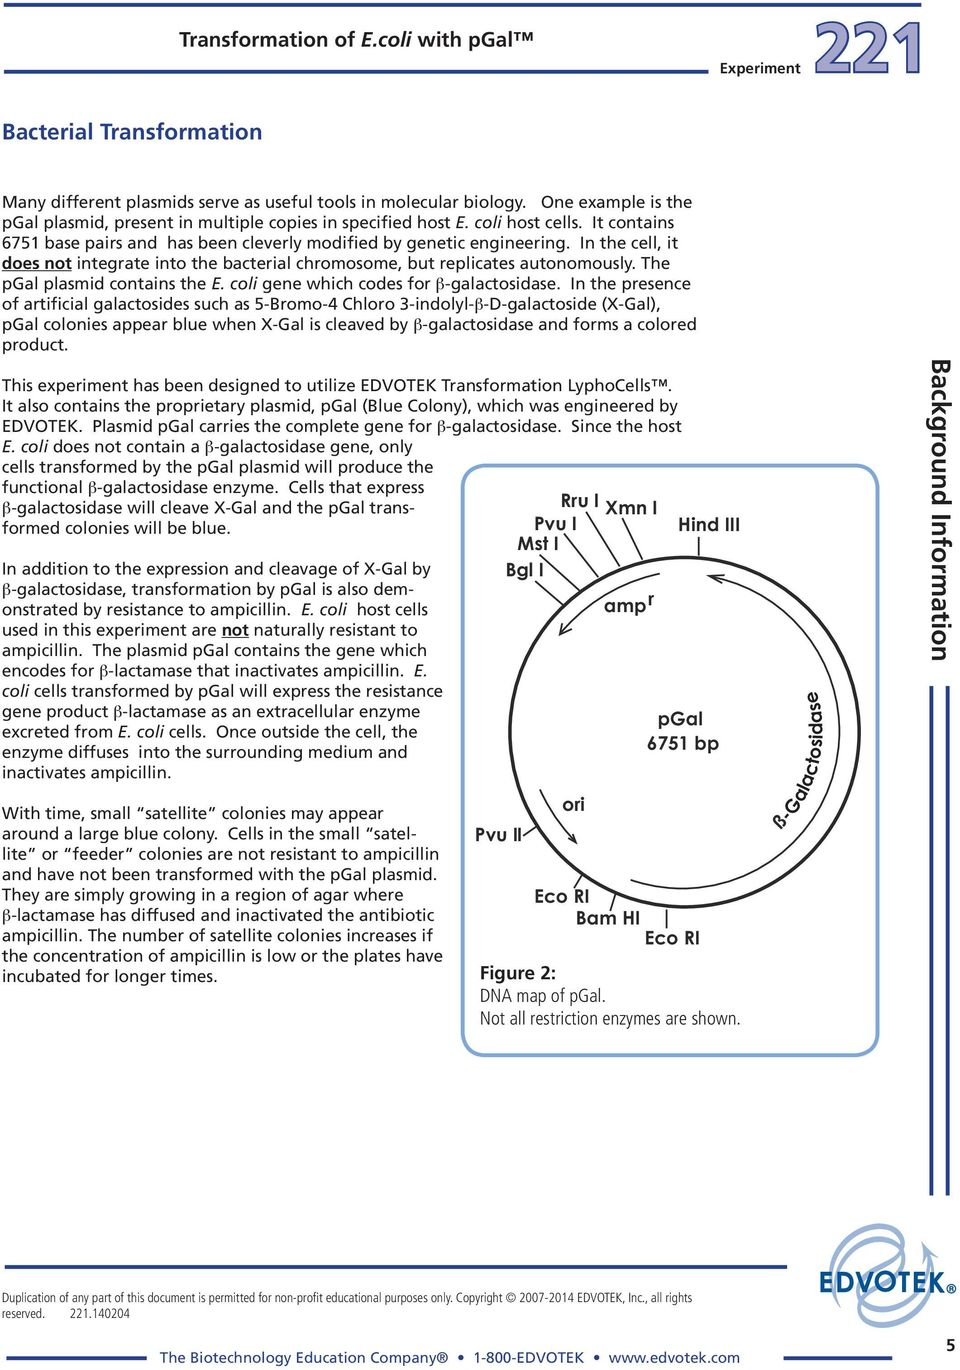 e coli transformation with plasmid pgal Introduction the transformation of bacterial cells is a useful experiment to help develop an understanding of transformation by plasmid of the effectiveness of transformation since the bacteria e coli are not naturally competent transformation pvib lab answers.